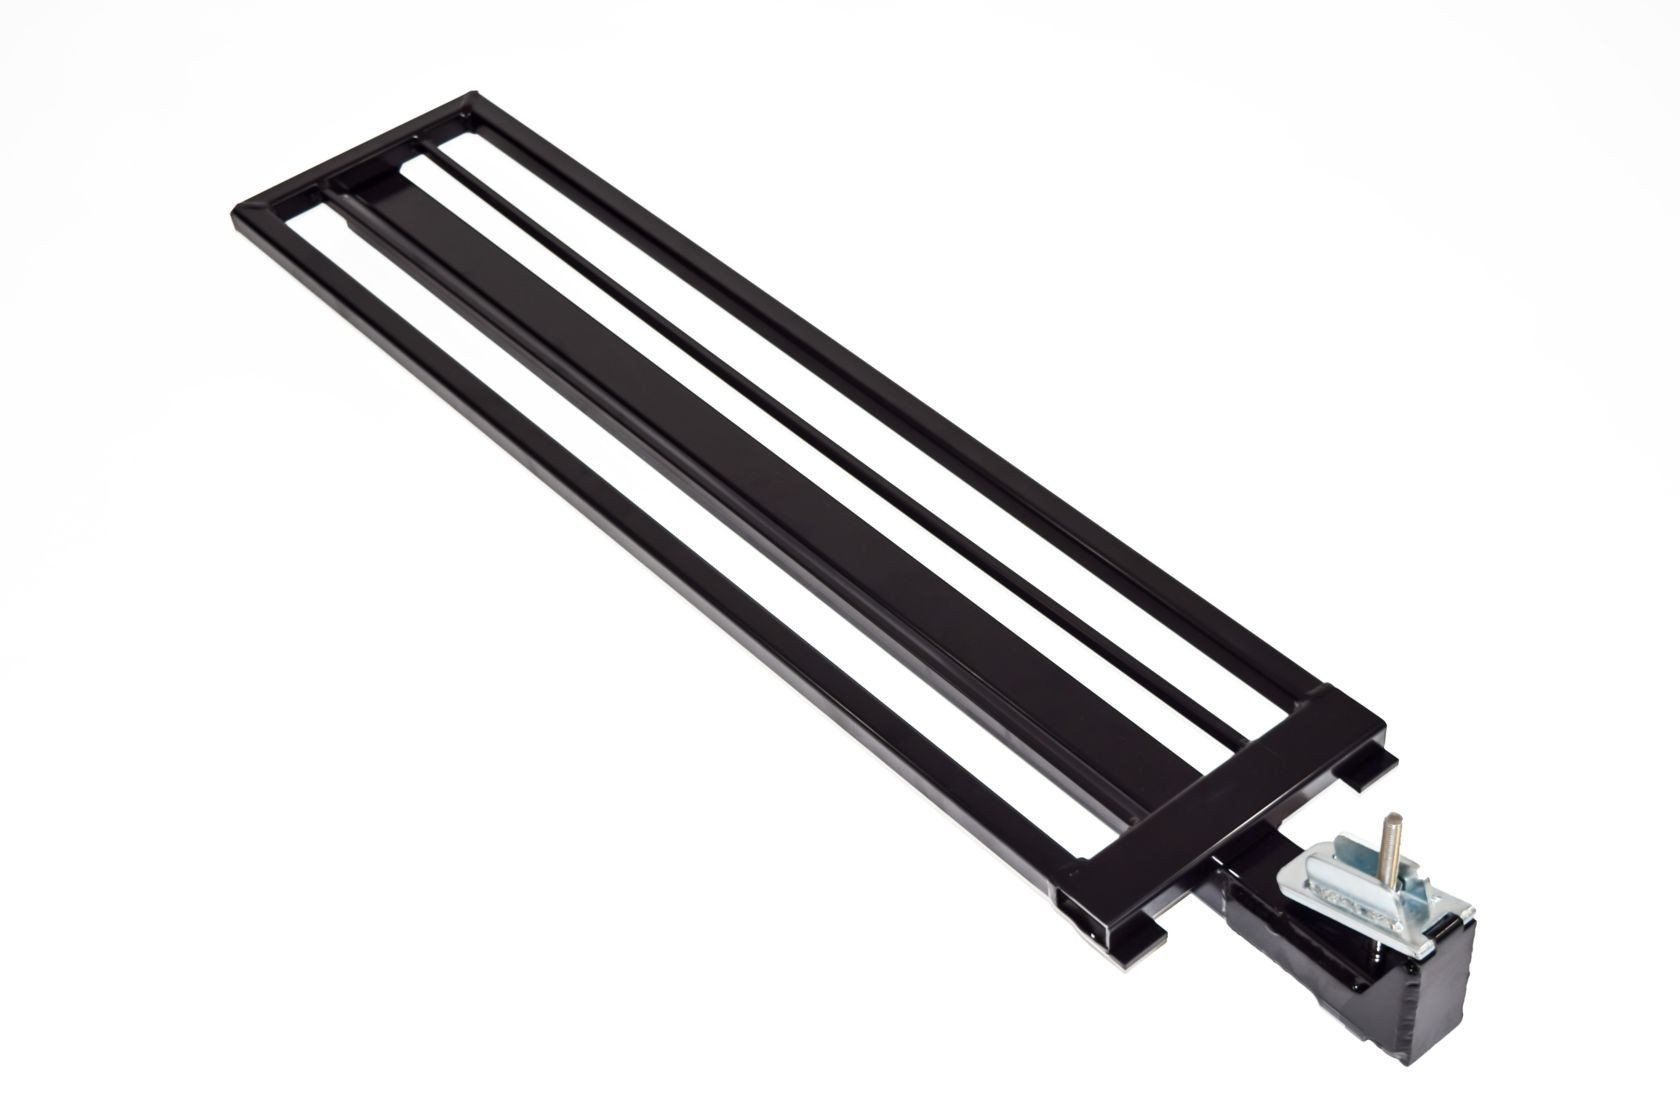 Aluminum Guardrail Frame (Code compliant for public use) Black Finish 1'x36